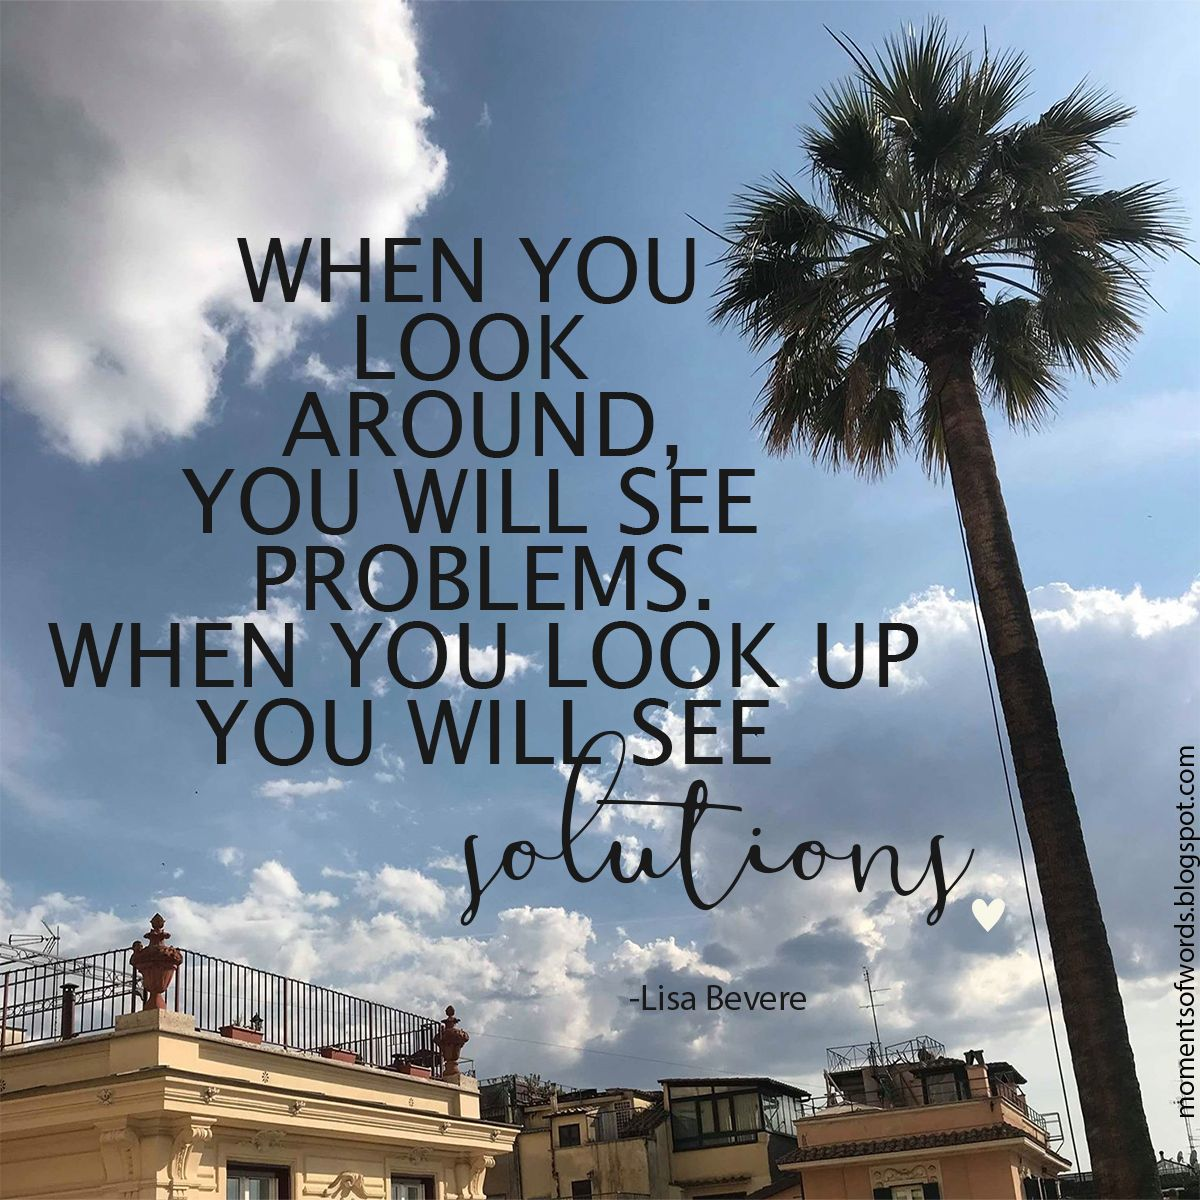 Look Up Moments Of Words Lookup Encouragement Wisewords Wisdomwords Lisabevere Quote Thereisalwaysasolution Look Up Quotes Up Quotes Looking Up